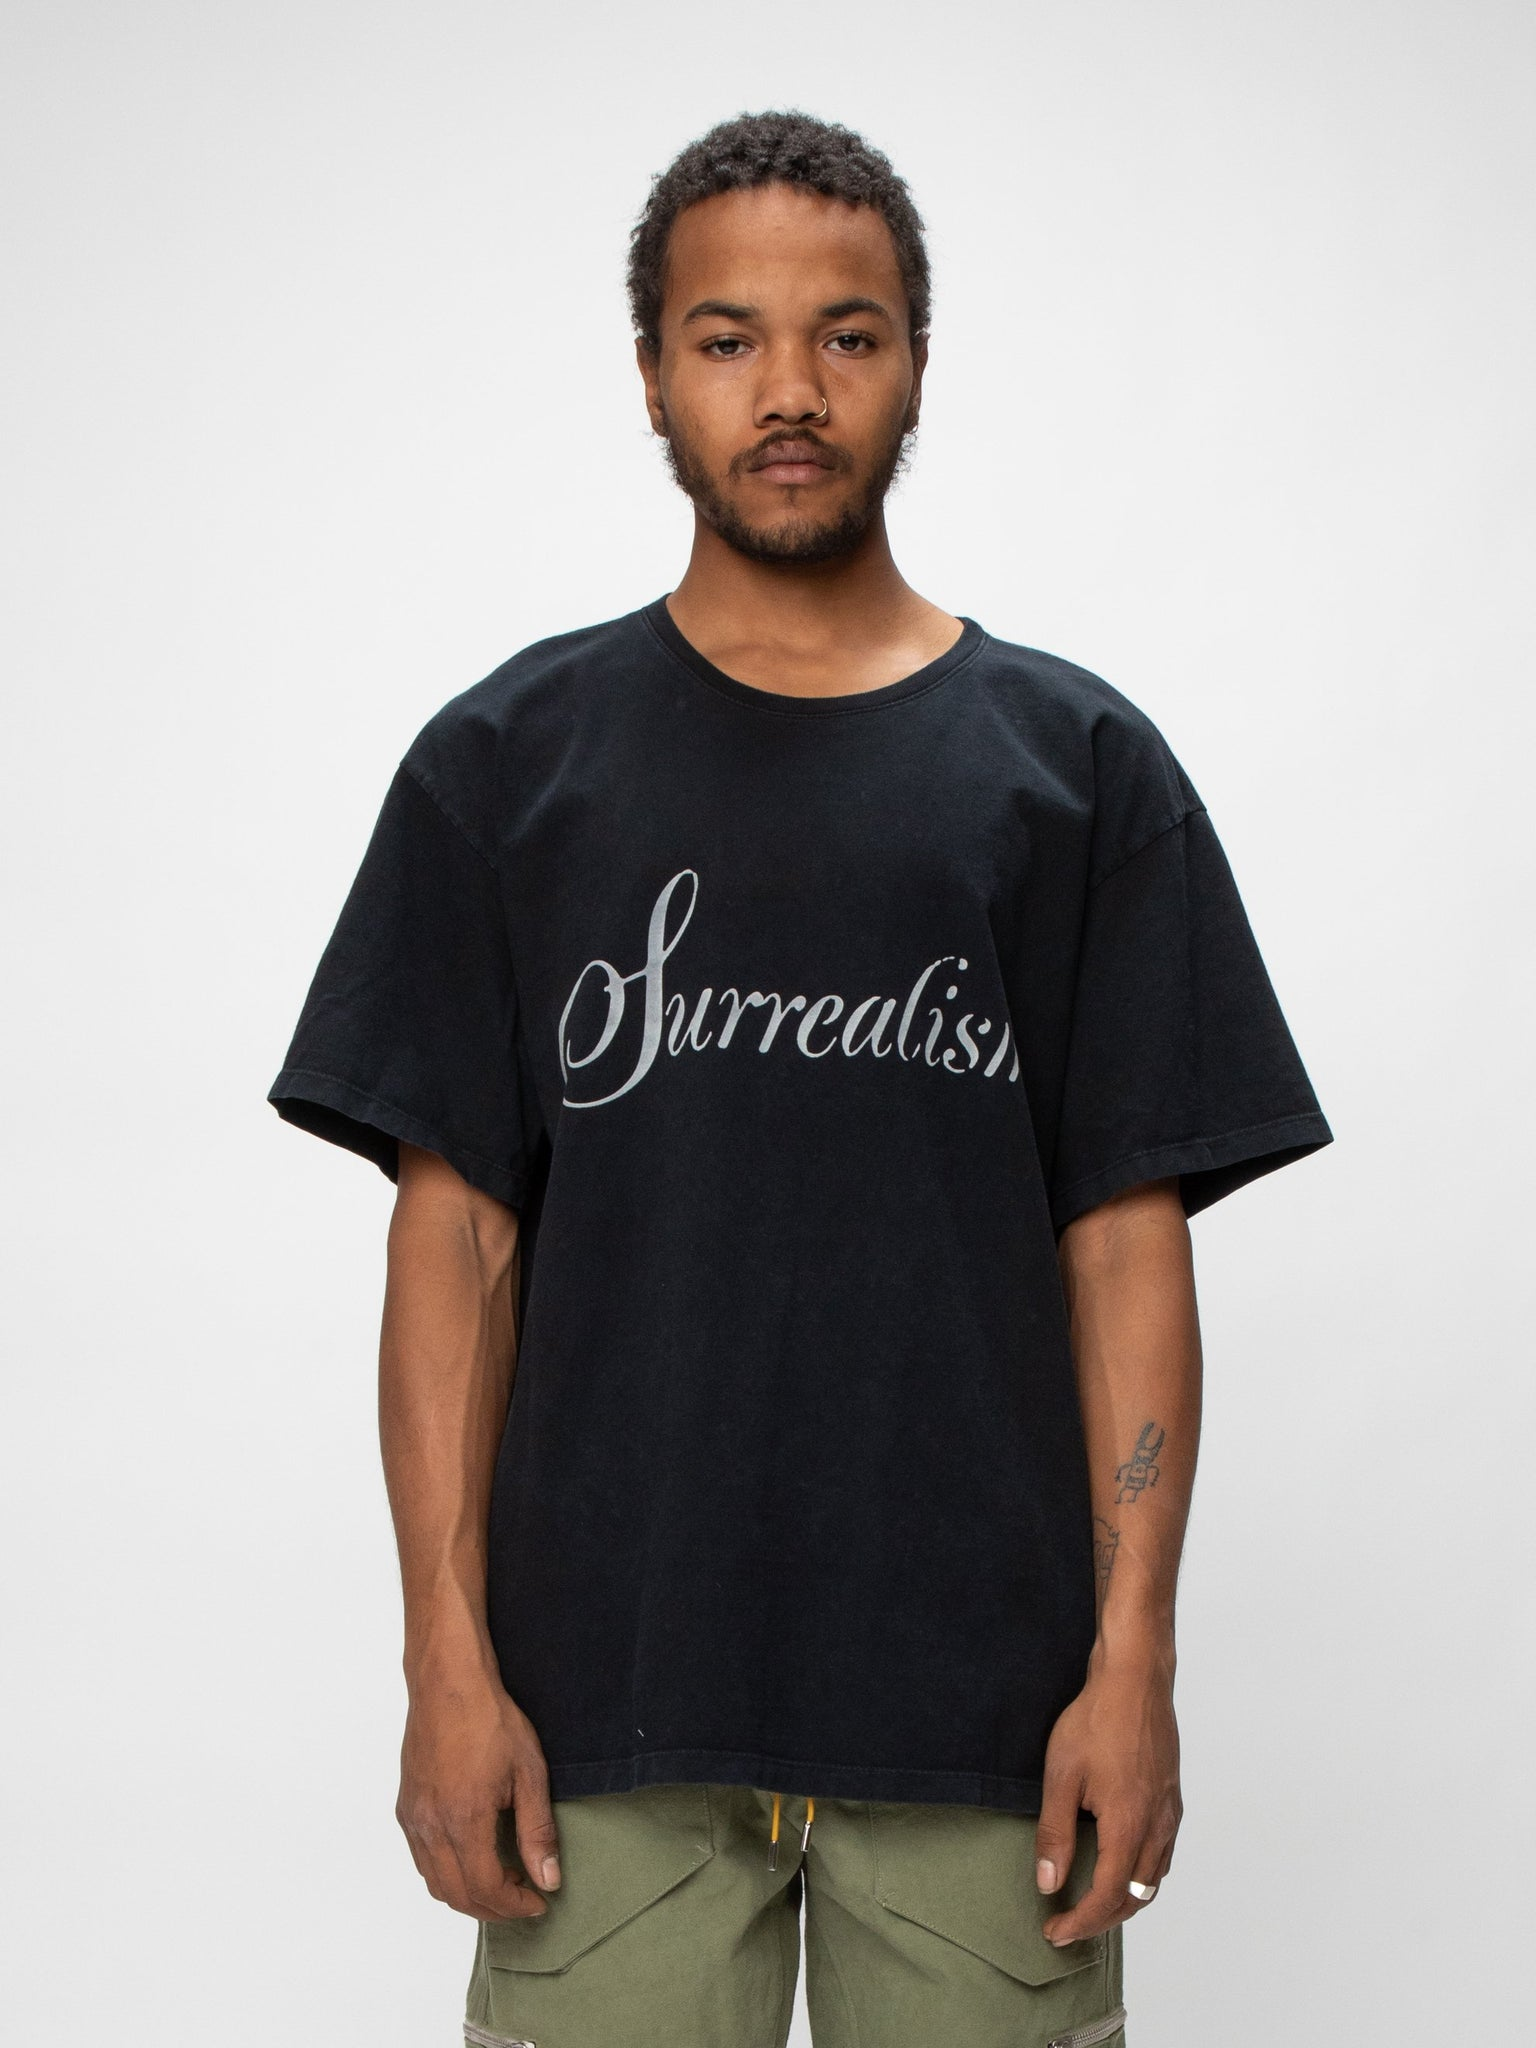 surrealism-t-shirt